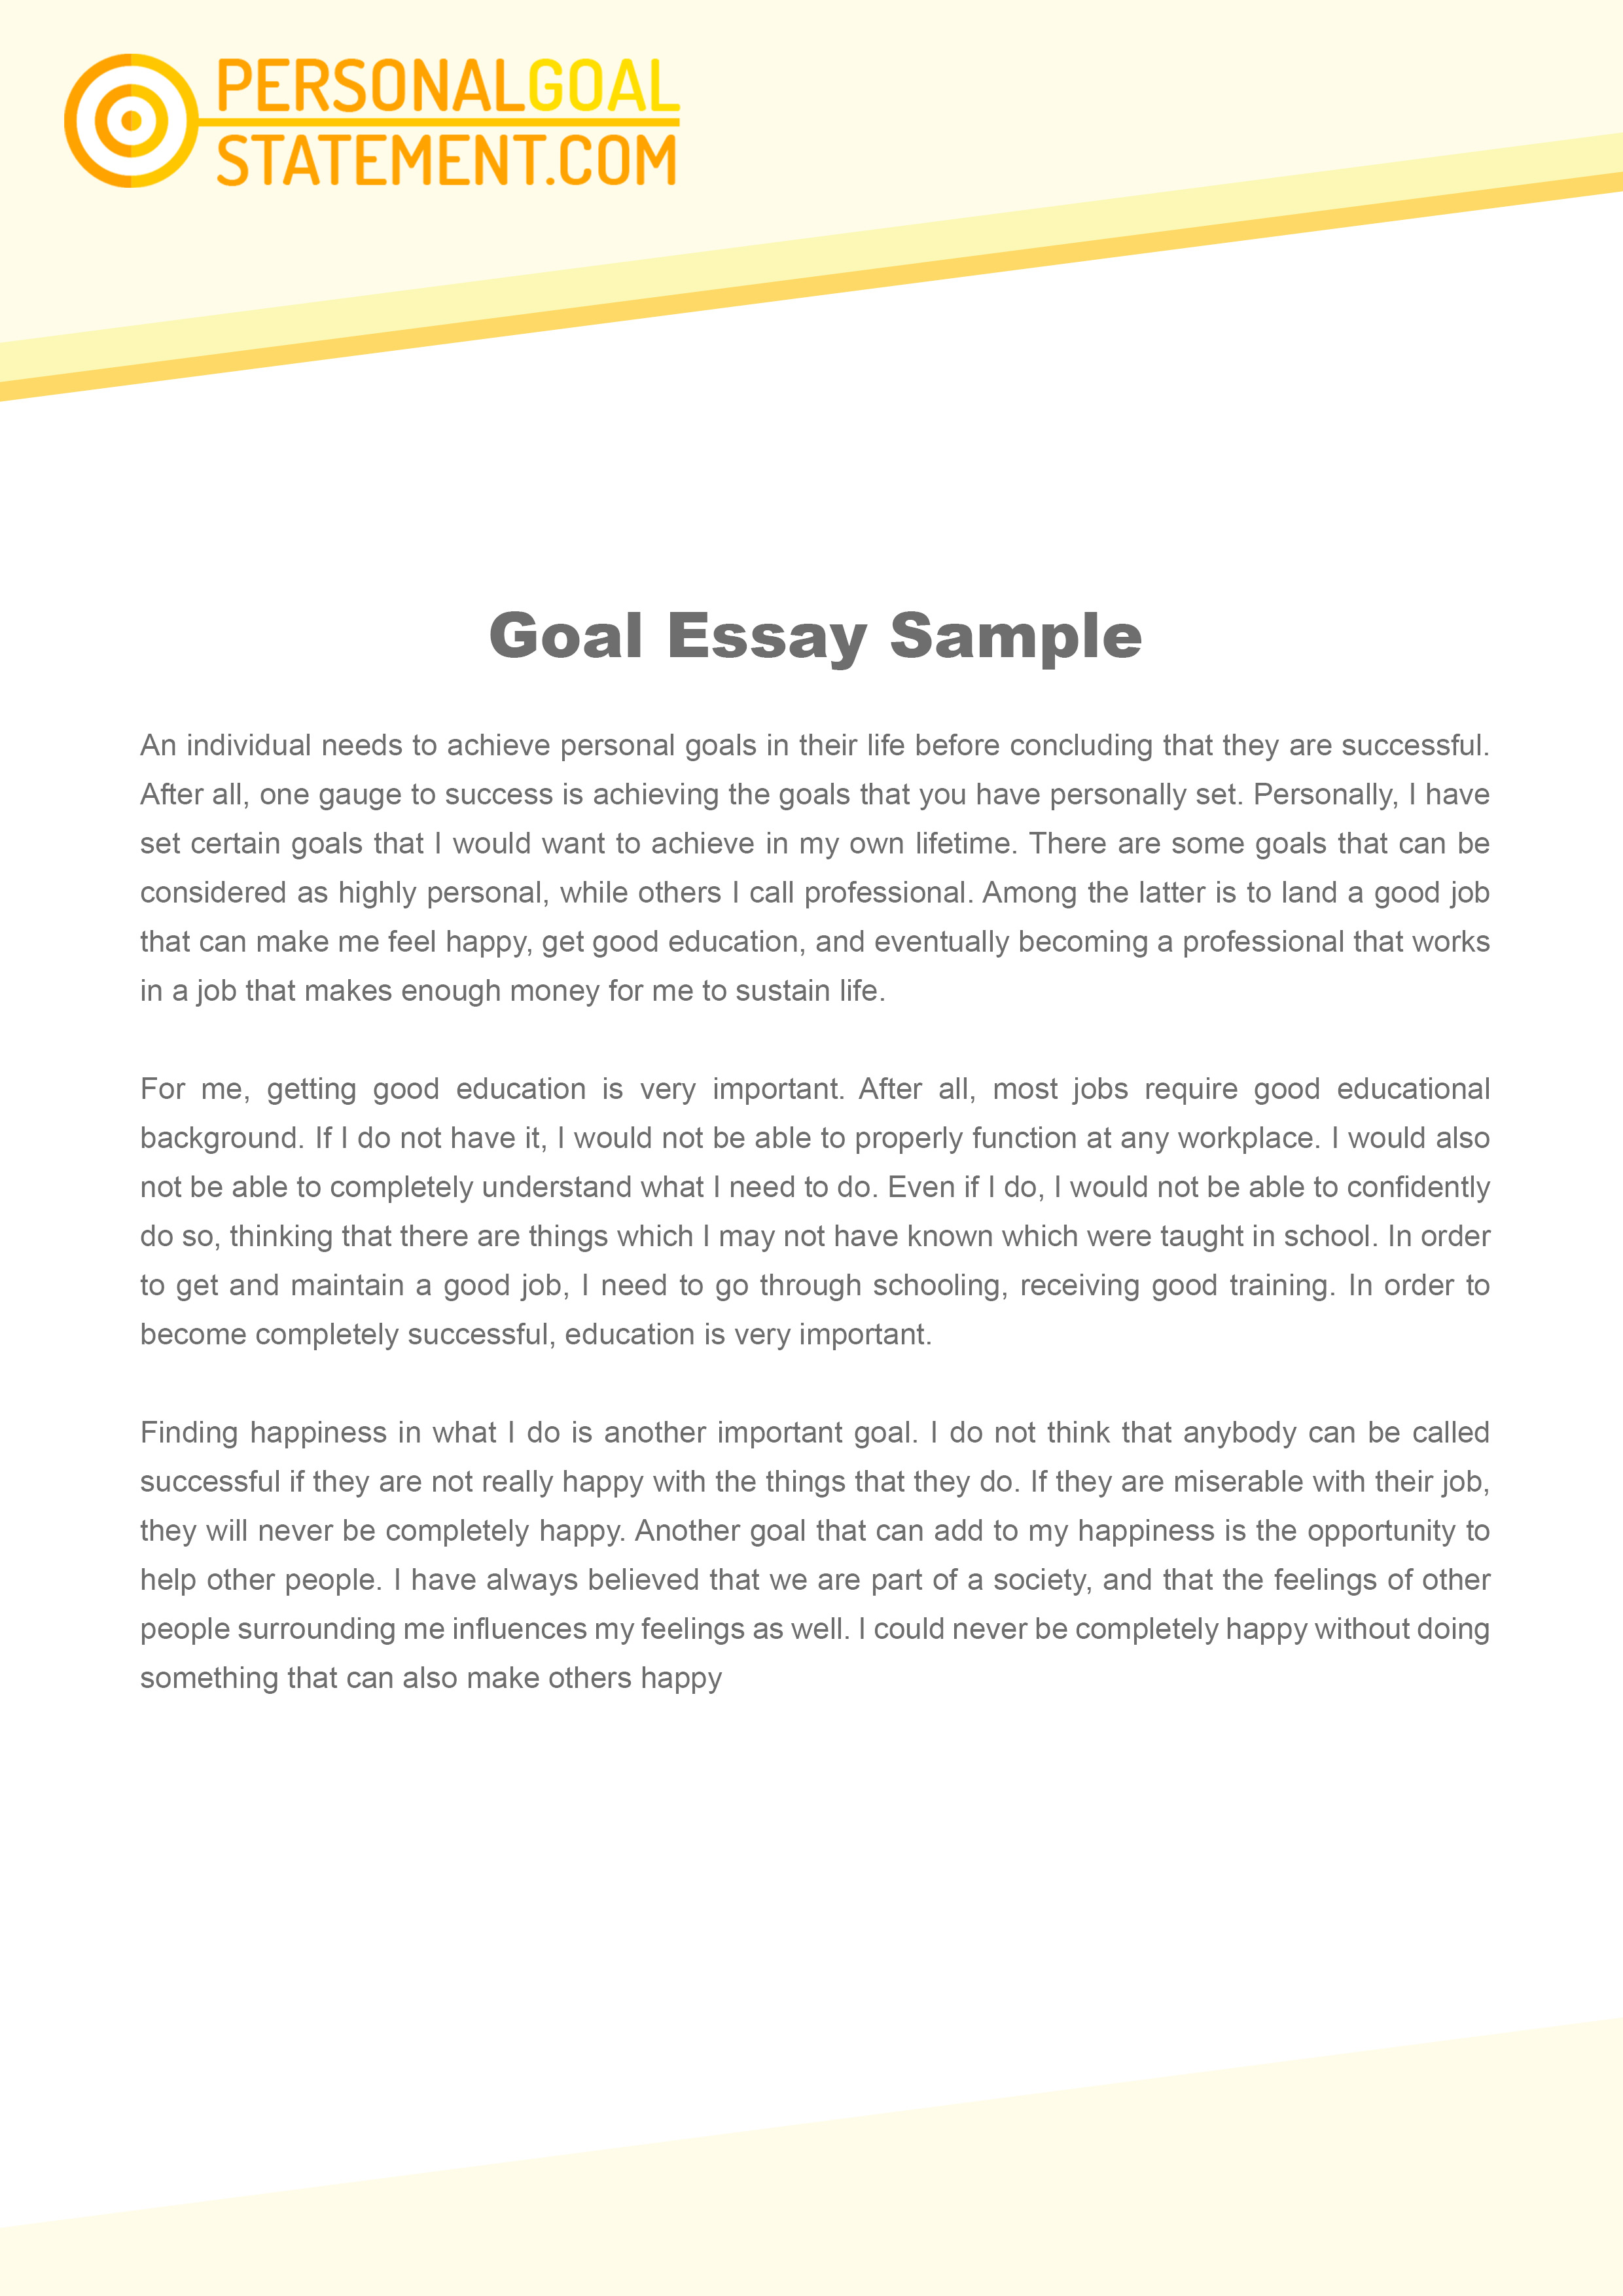 007 Academic Goals Essay Example Career Goal Uniforms Debate Personal Examples L Dreaded For College Students Scholarship Future High School Full